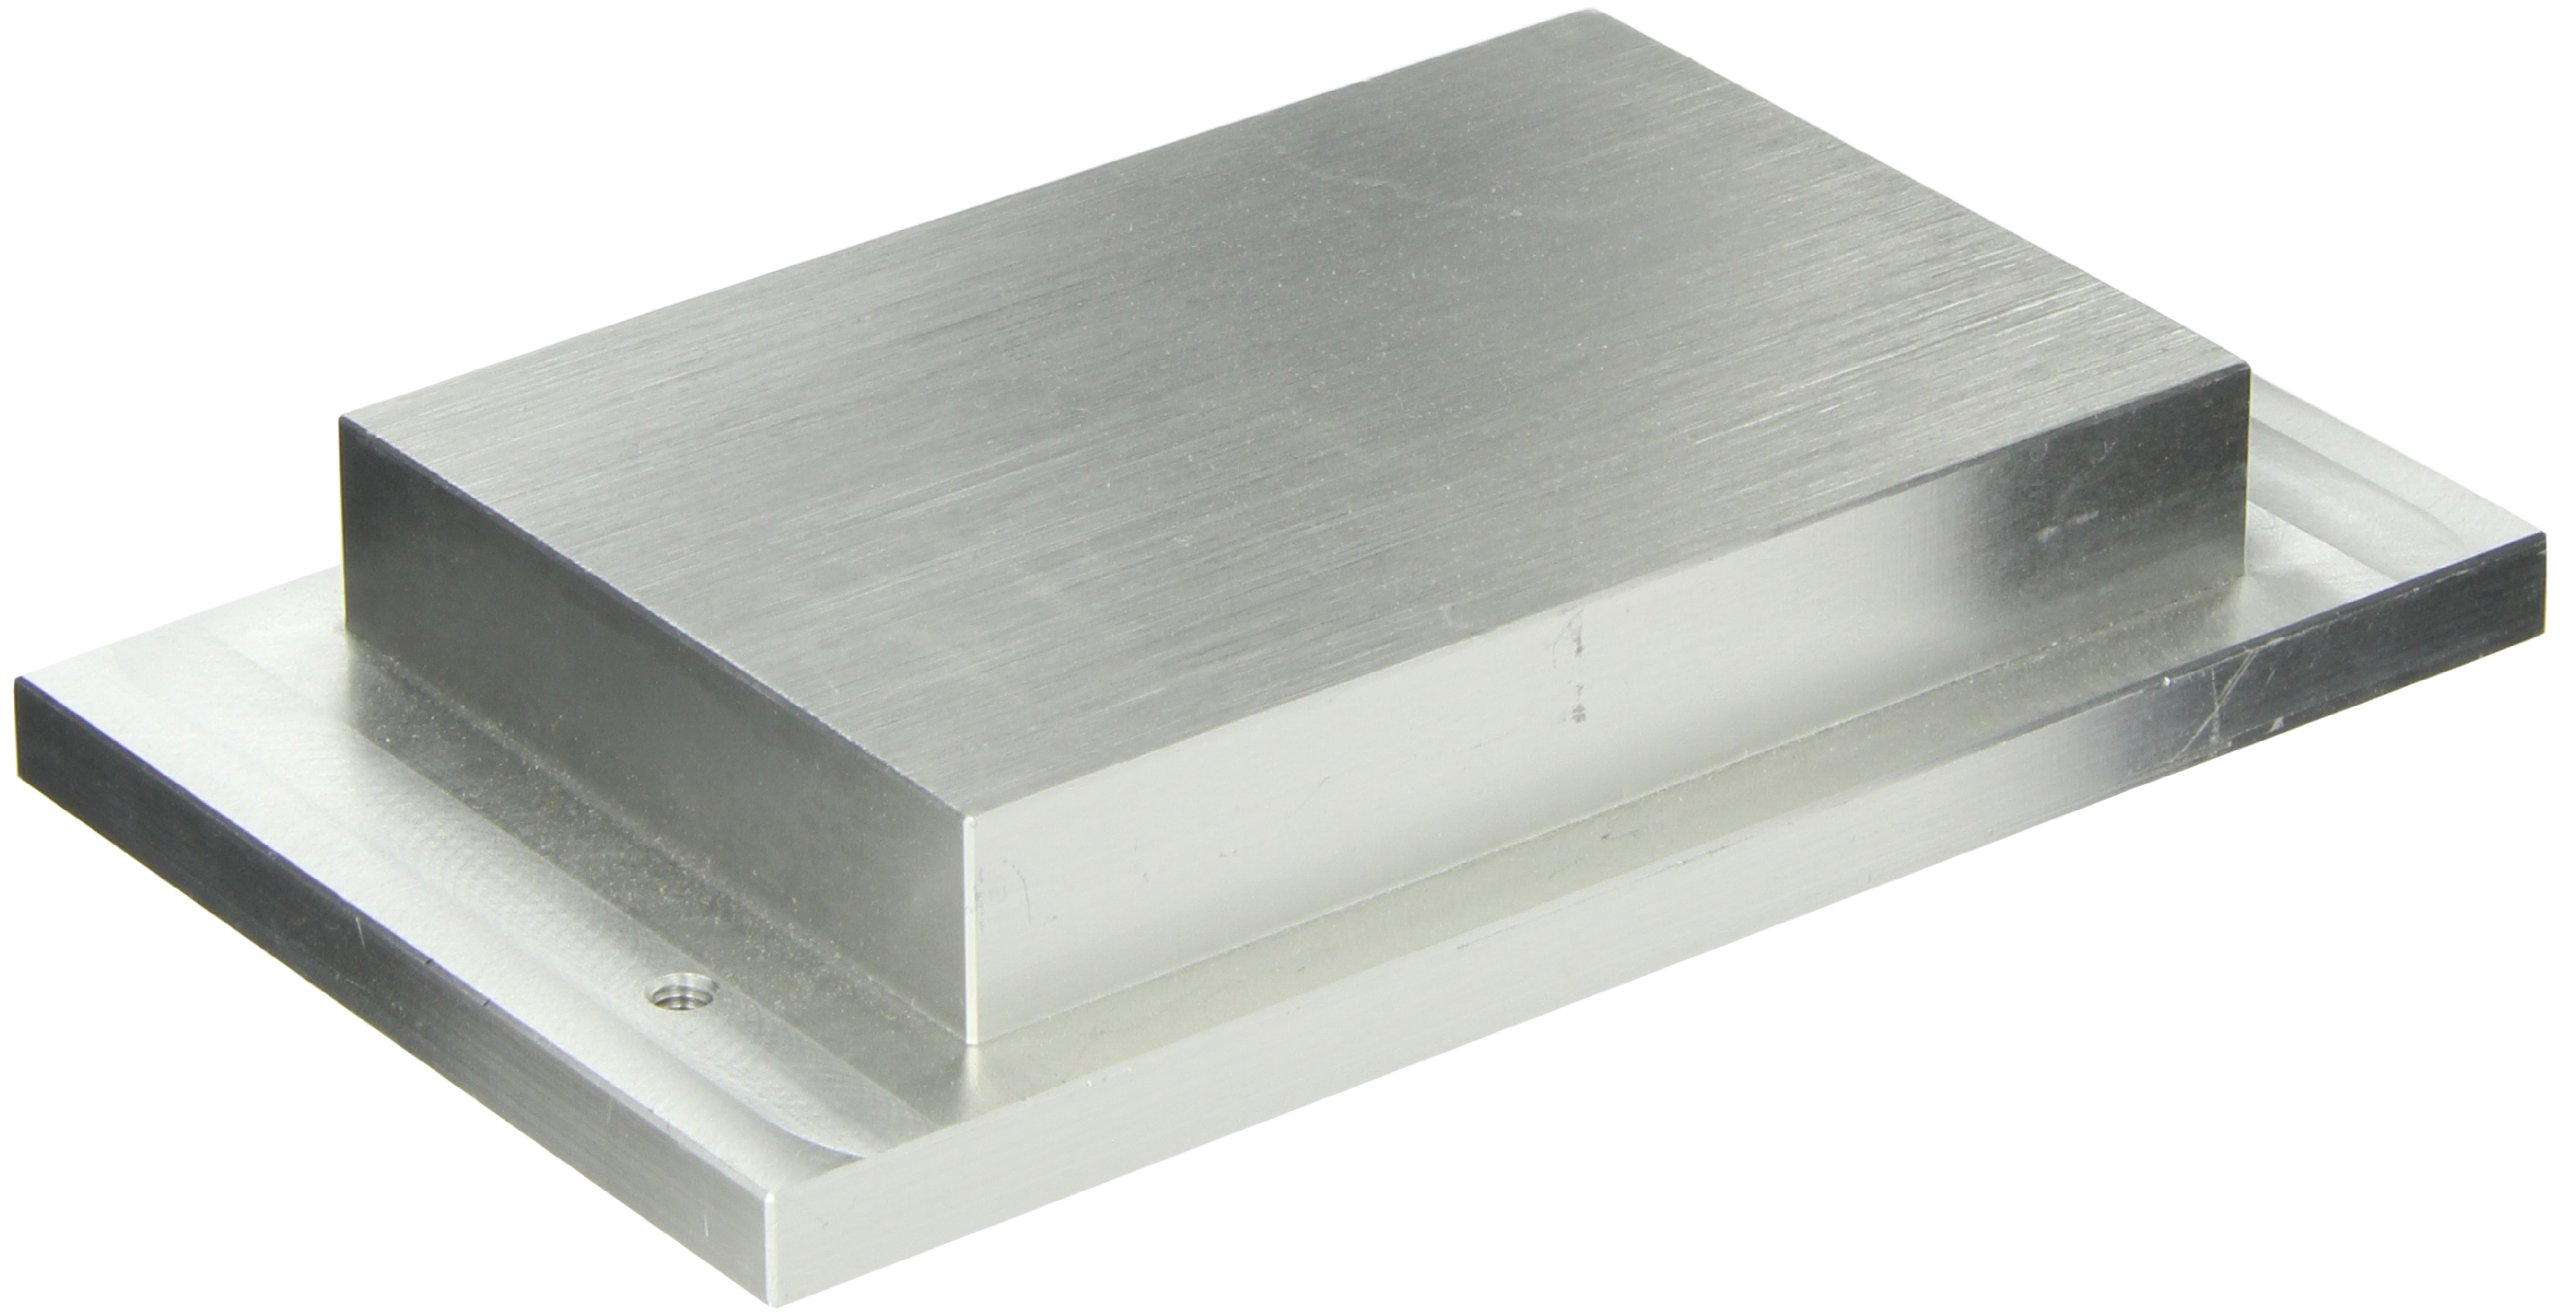 Labnet D1296 Aluminum Dry Bath Dual Block, Holds 96 Well Microtiter Plate/ 4 Slides by Labnet